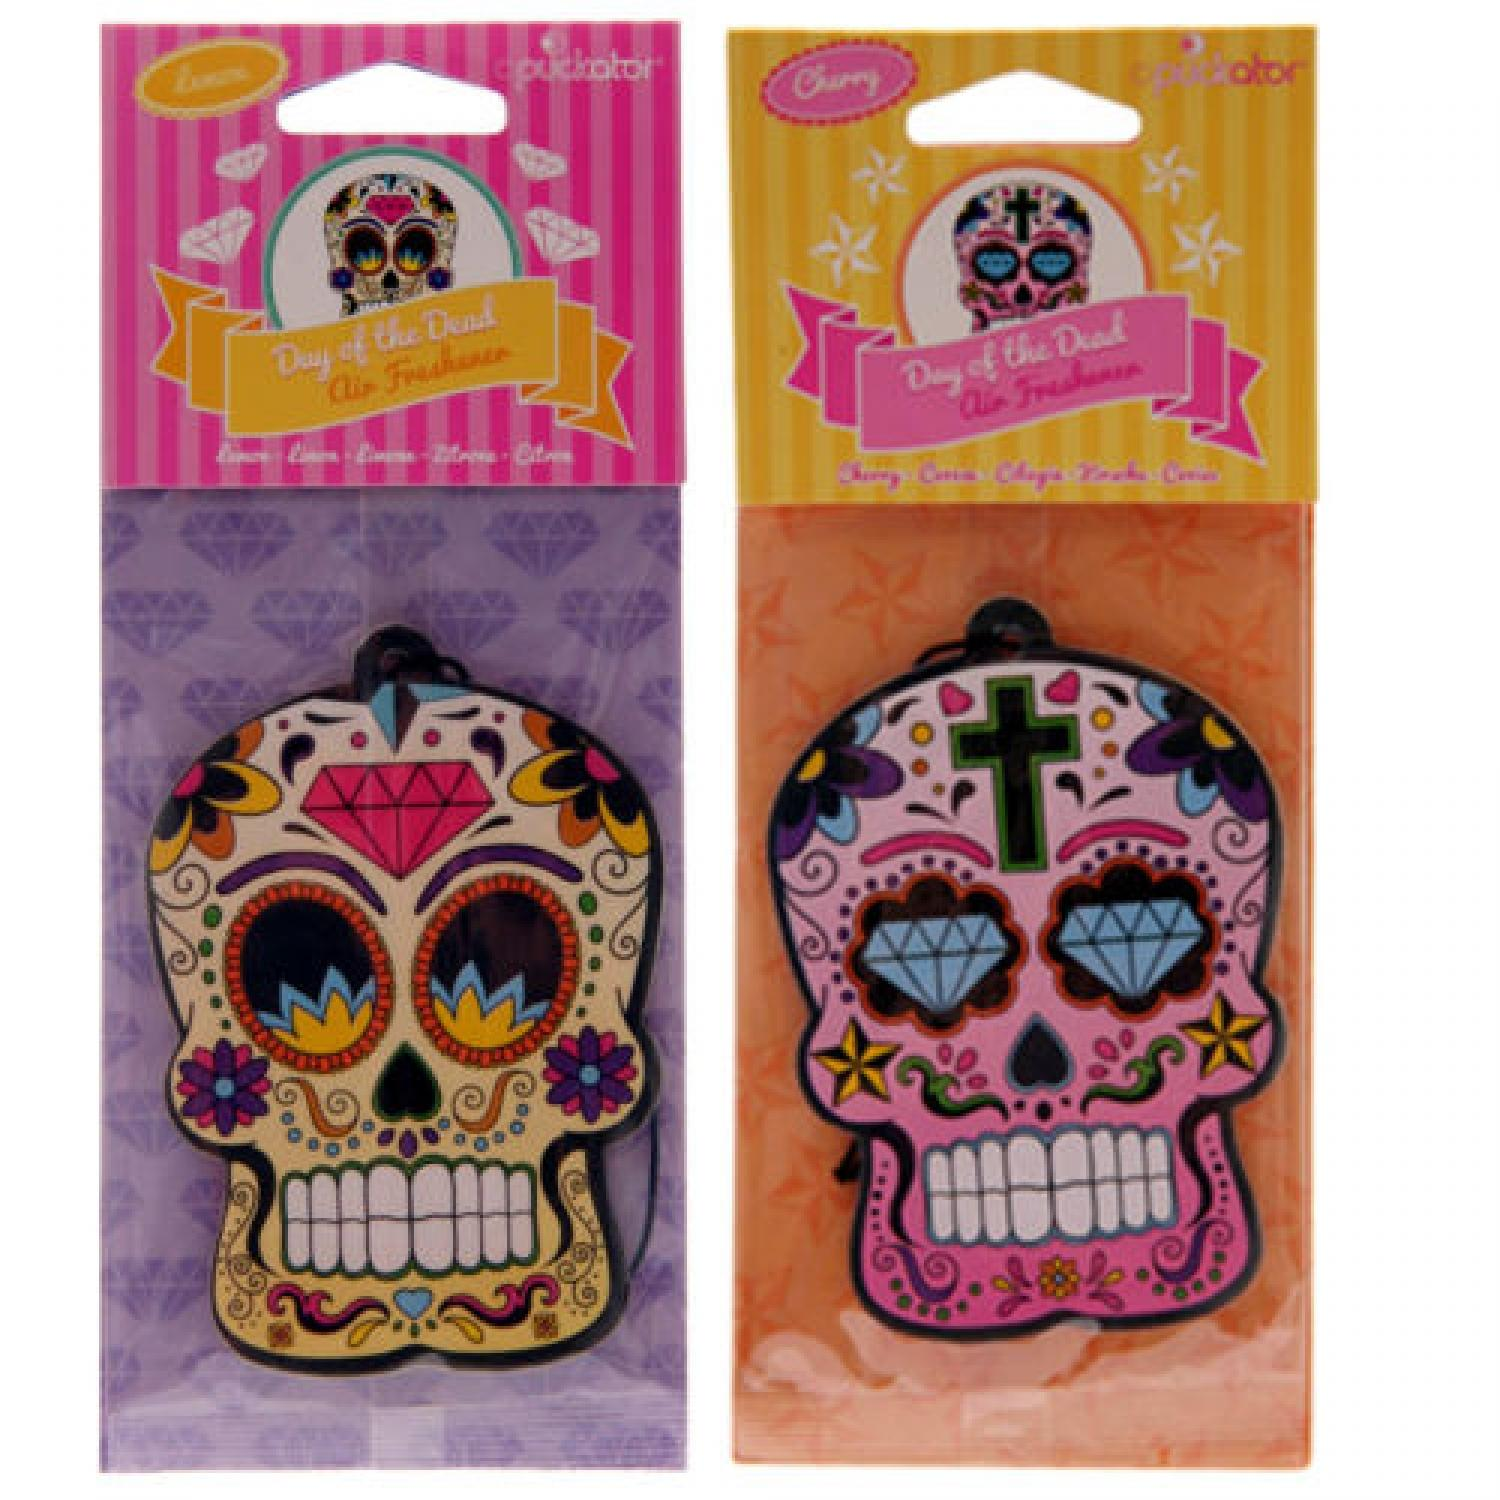 Air Fresheners - Day of the Dead